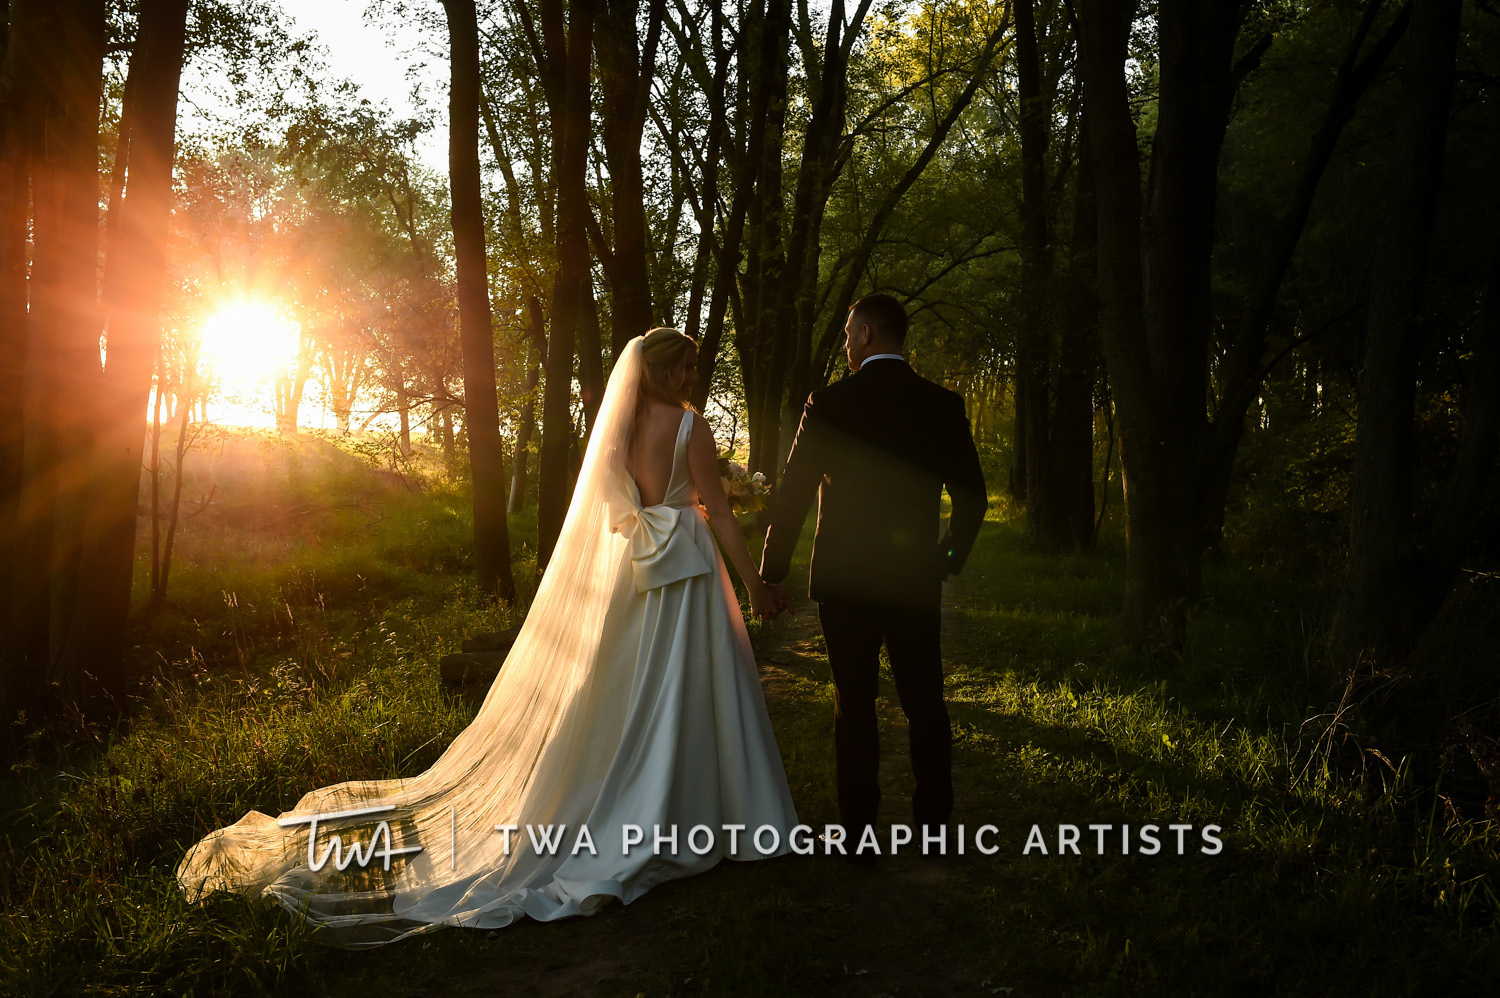 Chicago-Wedding-Photographer-TWA-Photographic-Artists-Private-Residence_Howes_Koczmara_SR_TL-0742